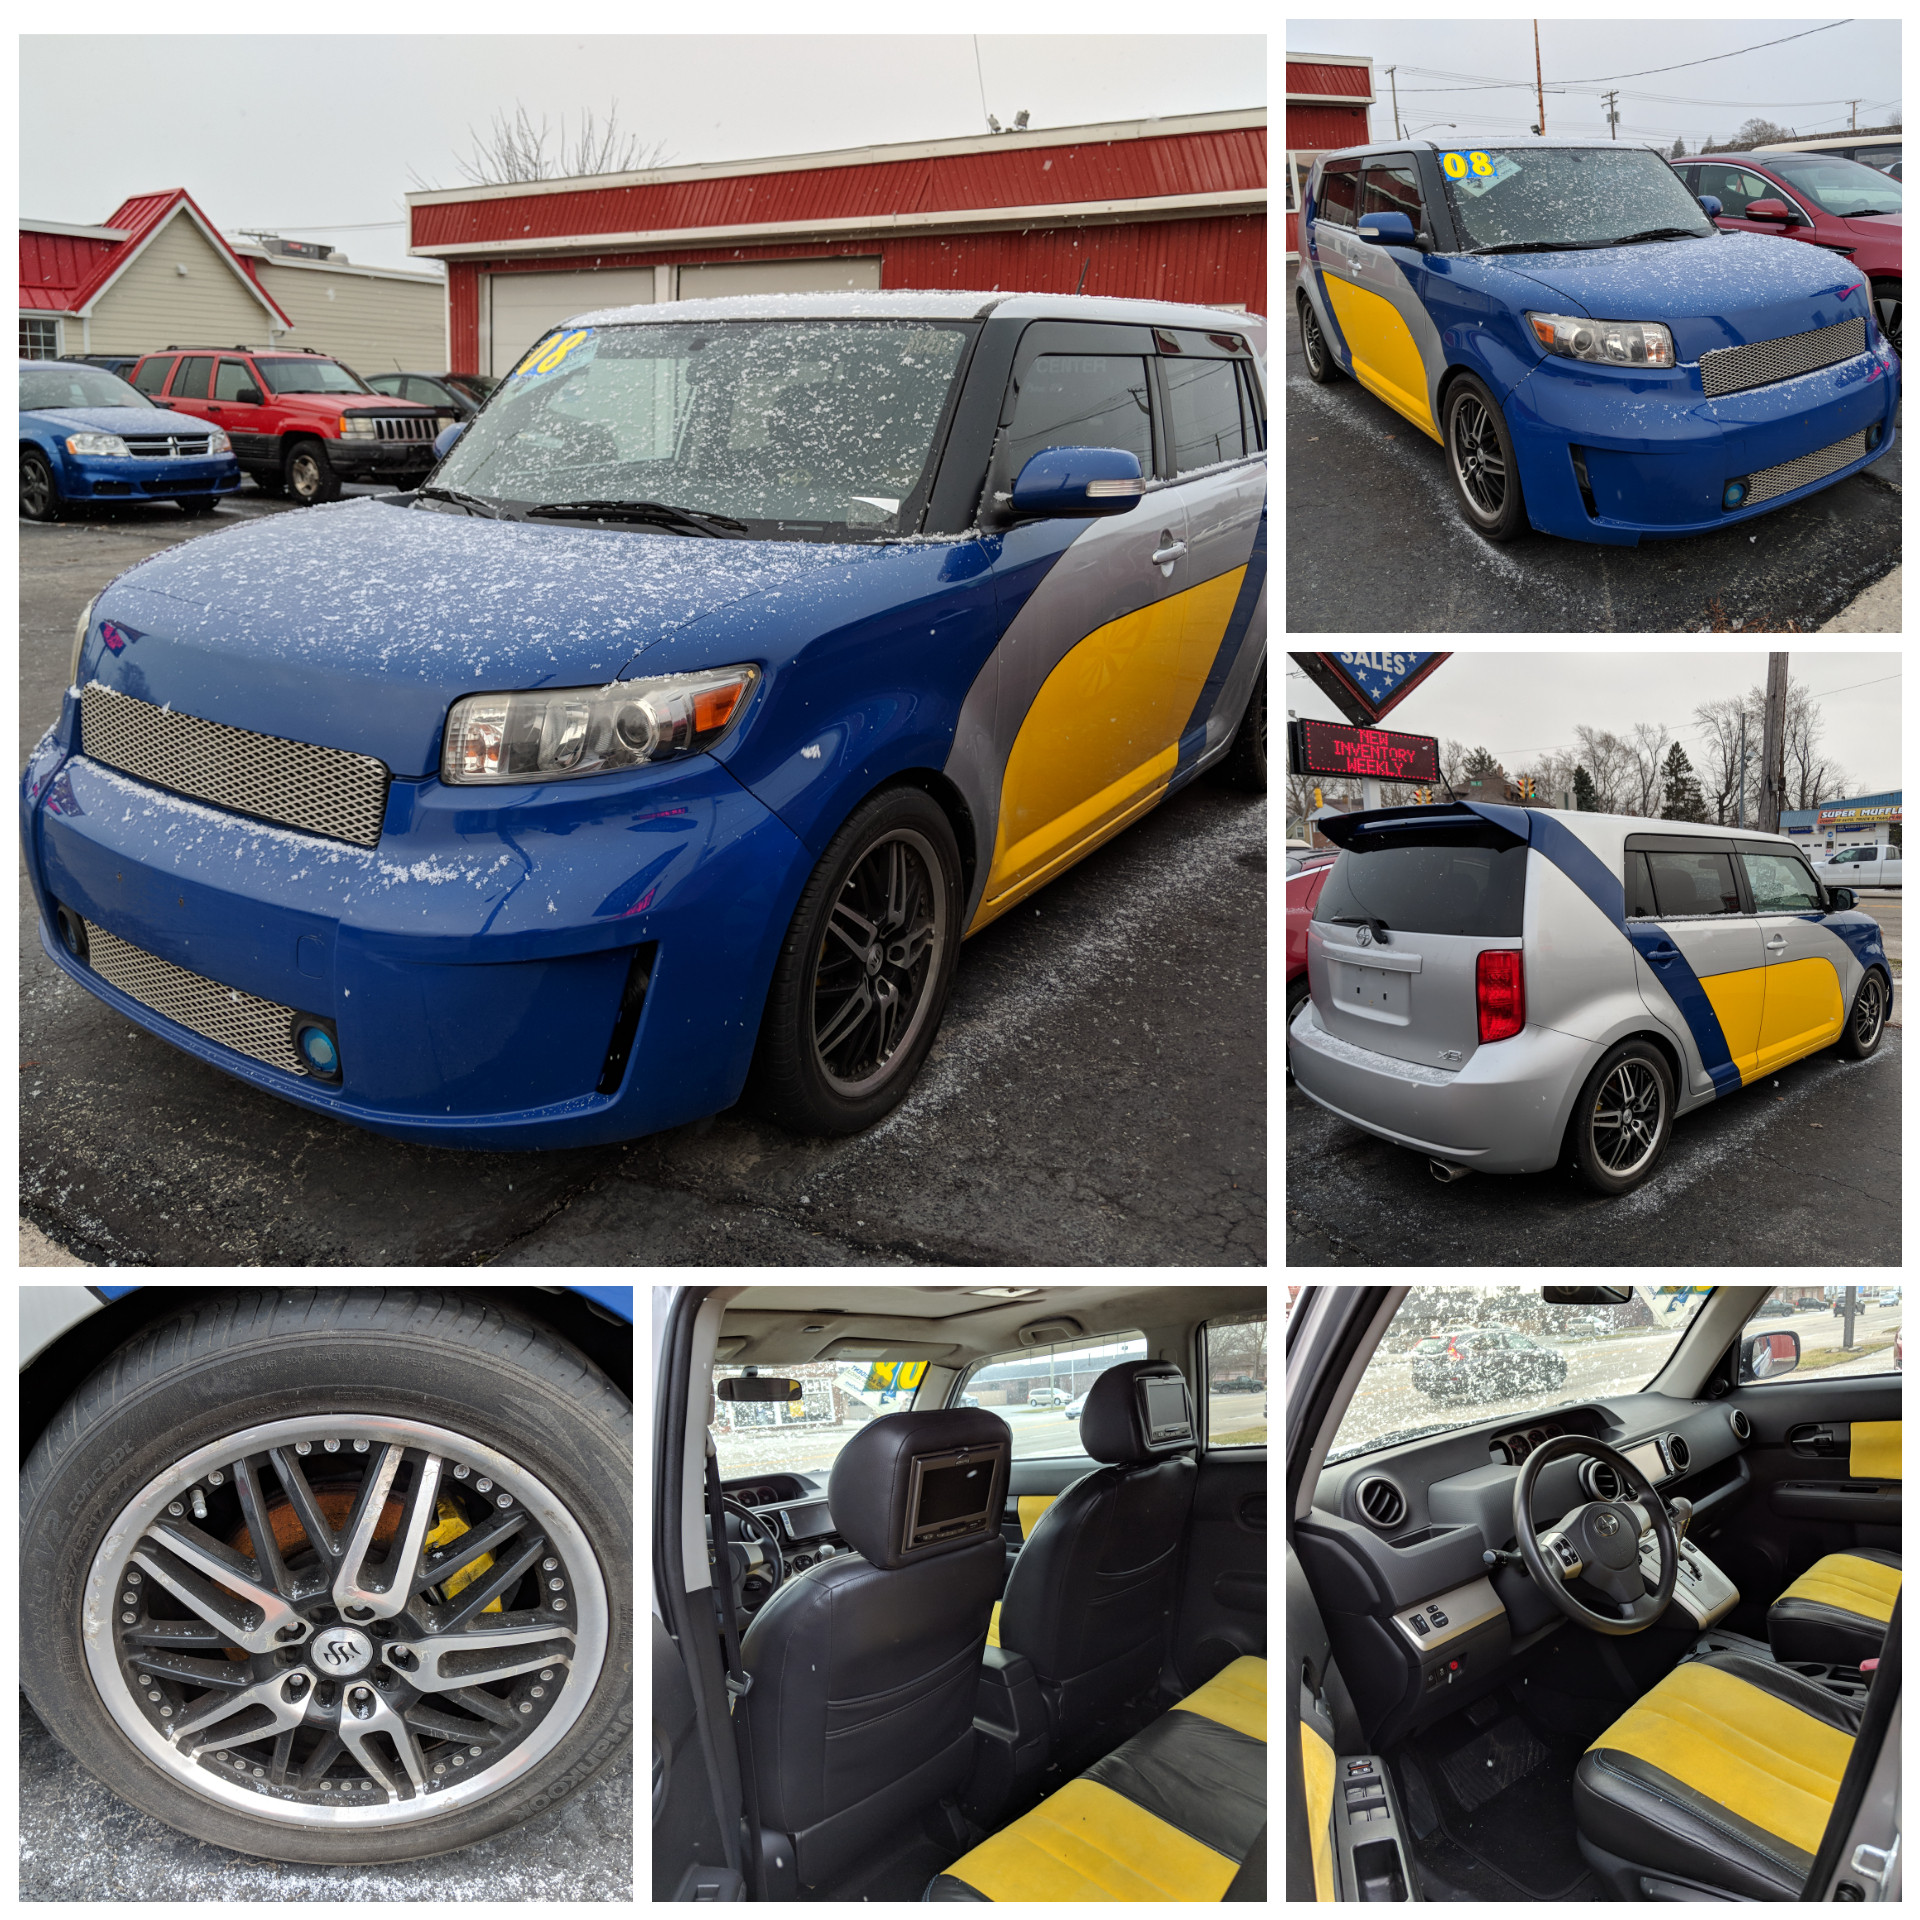 81 2008 Scion Xb Custom Tottaly 2006 For Xd Wiring Harness Includes Fully Paint Body Kit Aftermarket Rims 2 12inch Subs 5 Tvs California Leather Moon